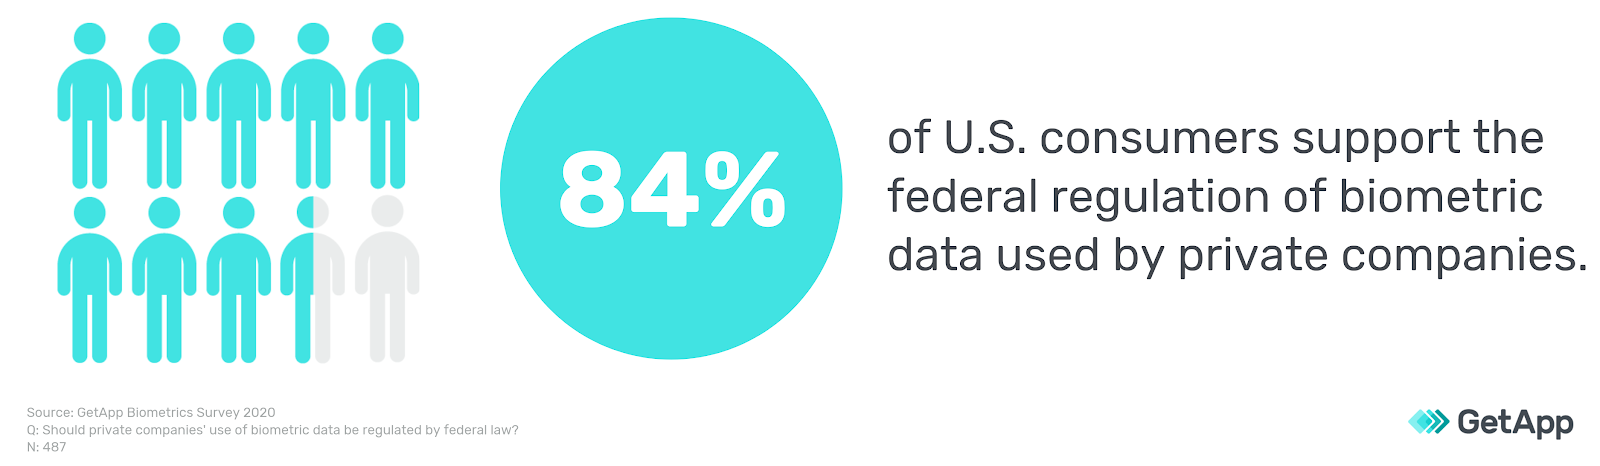 84 percent of US consumers support regulation of biometric data